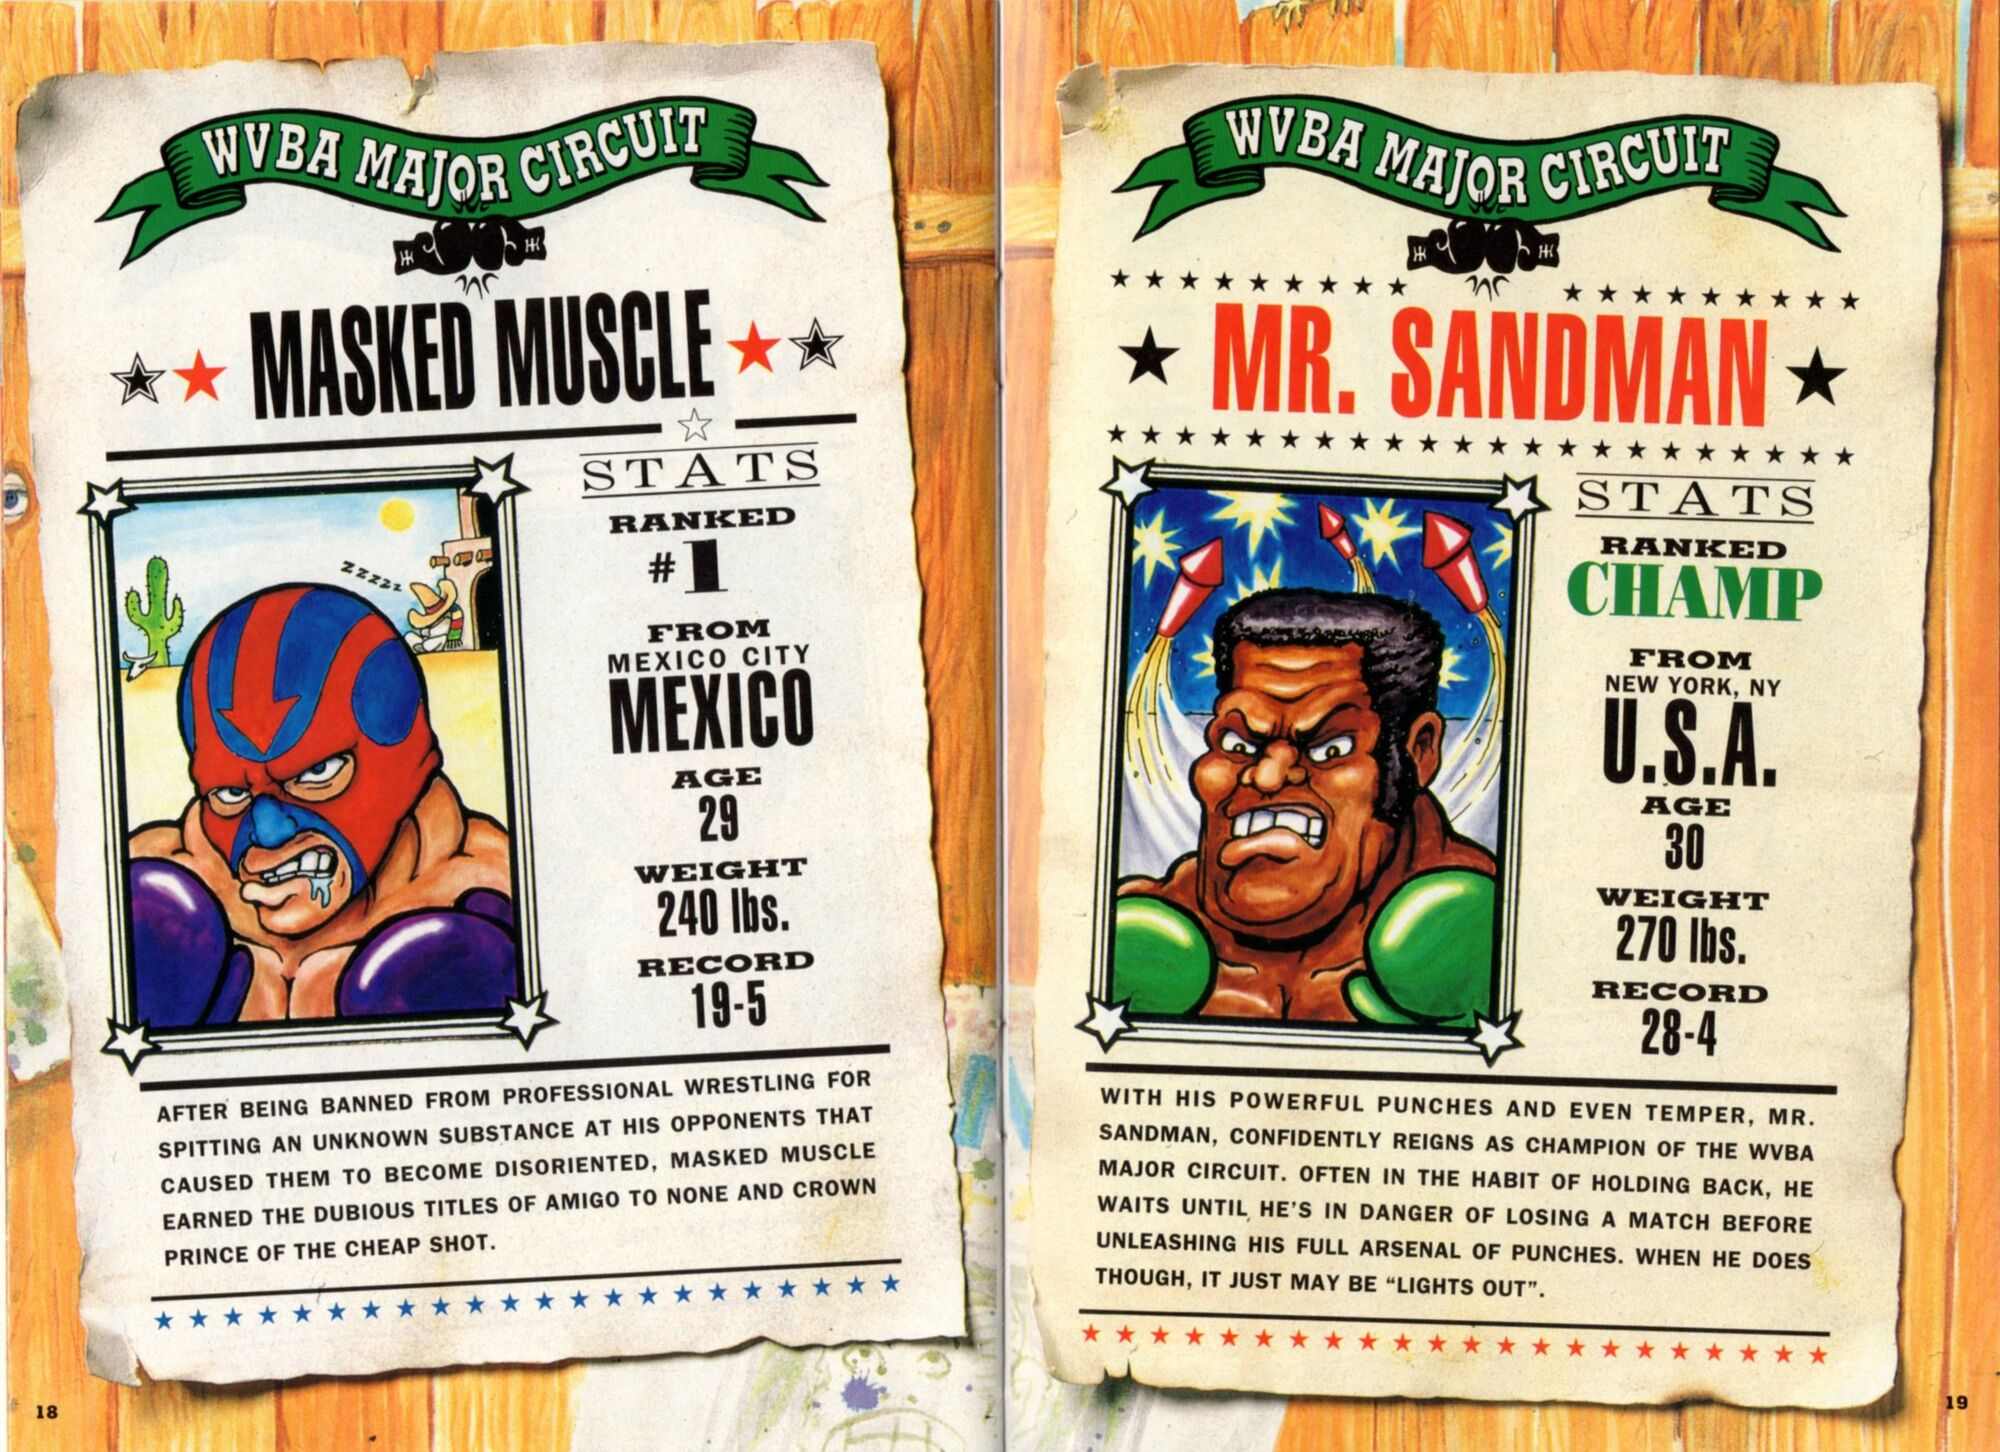 Masked muscle punch out wiki fandom powered by wikia for What is a punch out list